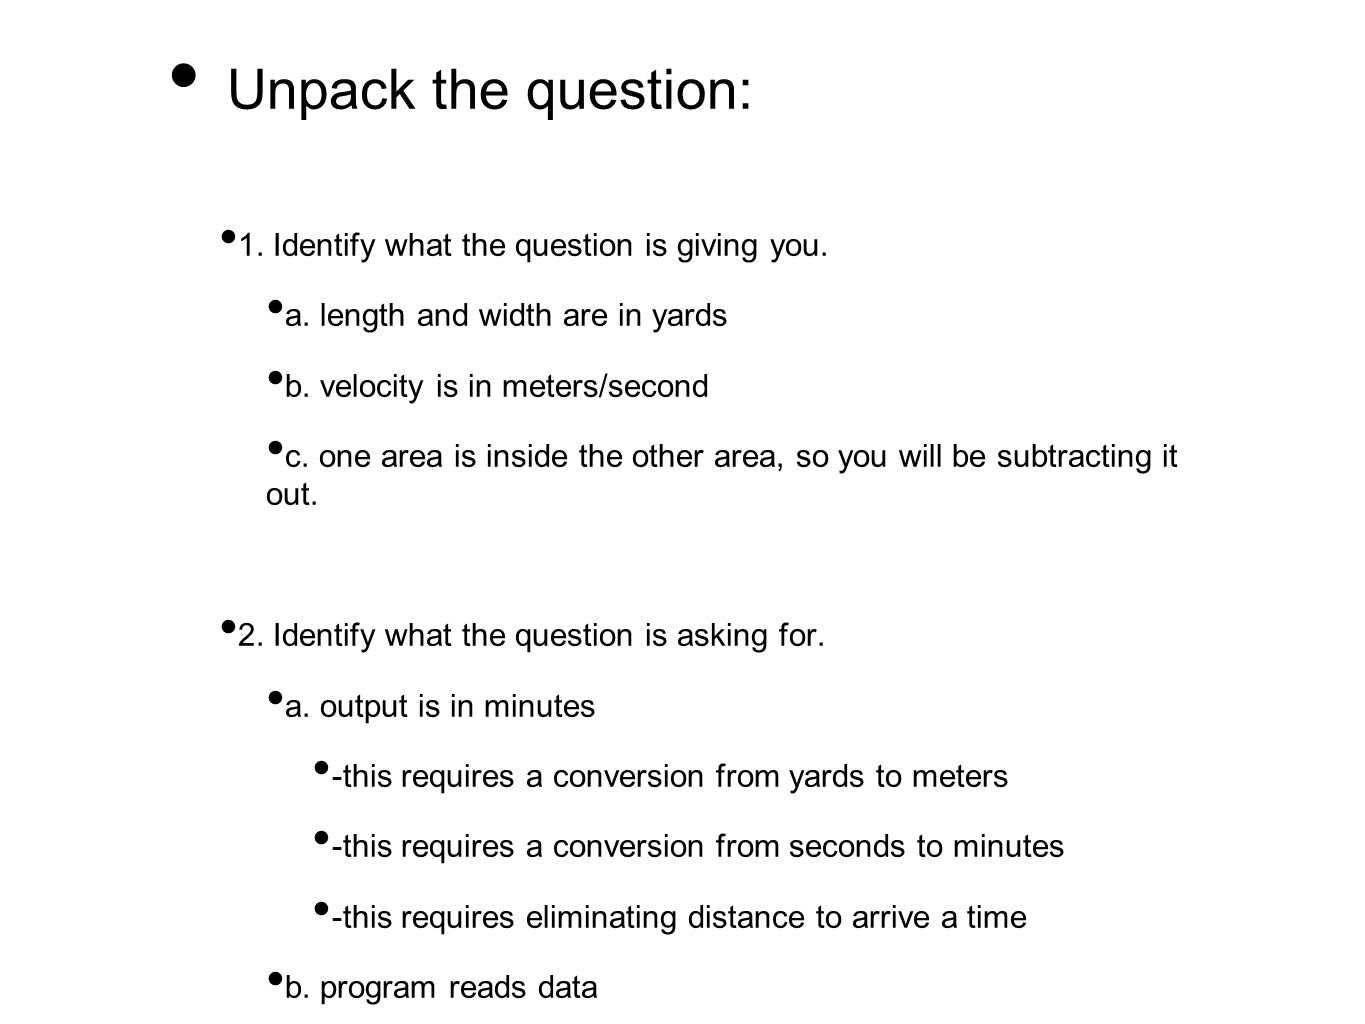 Unpack the question: 1. Identify what the question is giving you. a. length and width are in yards.